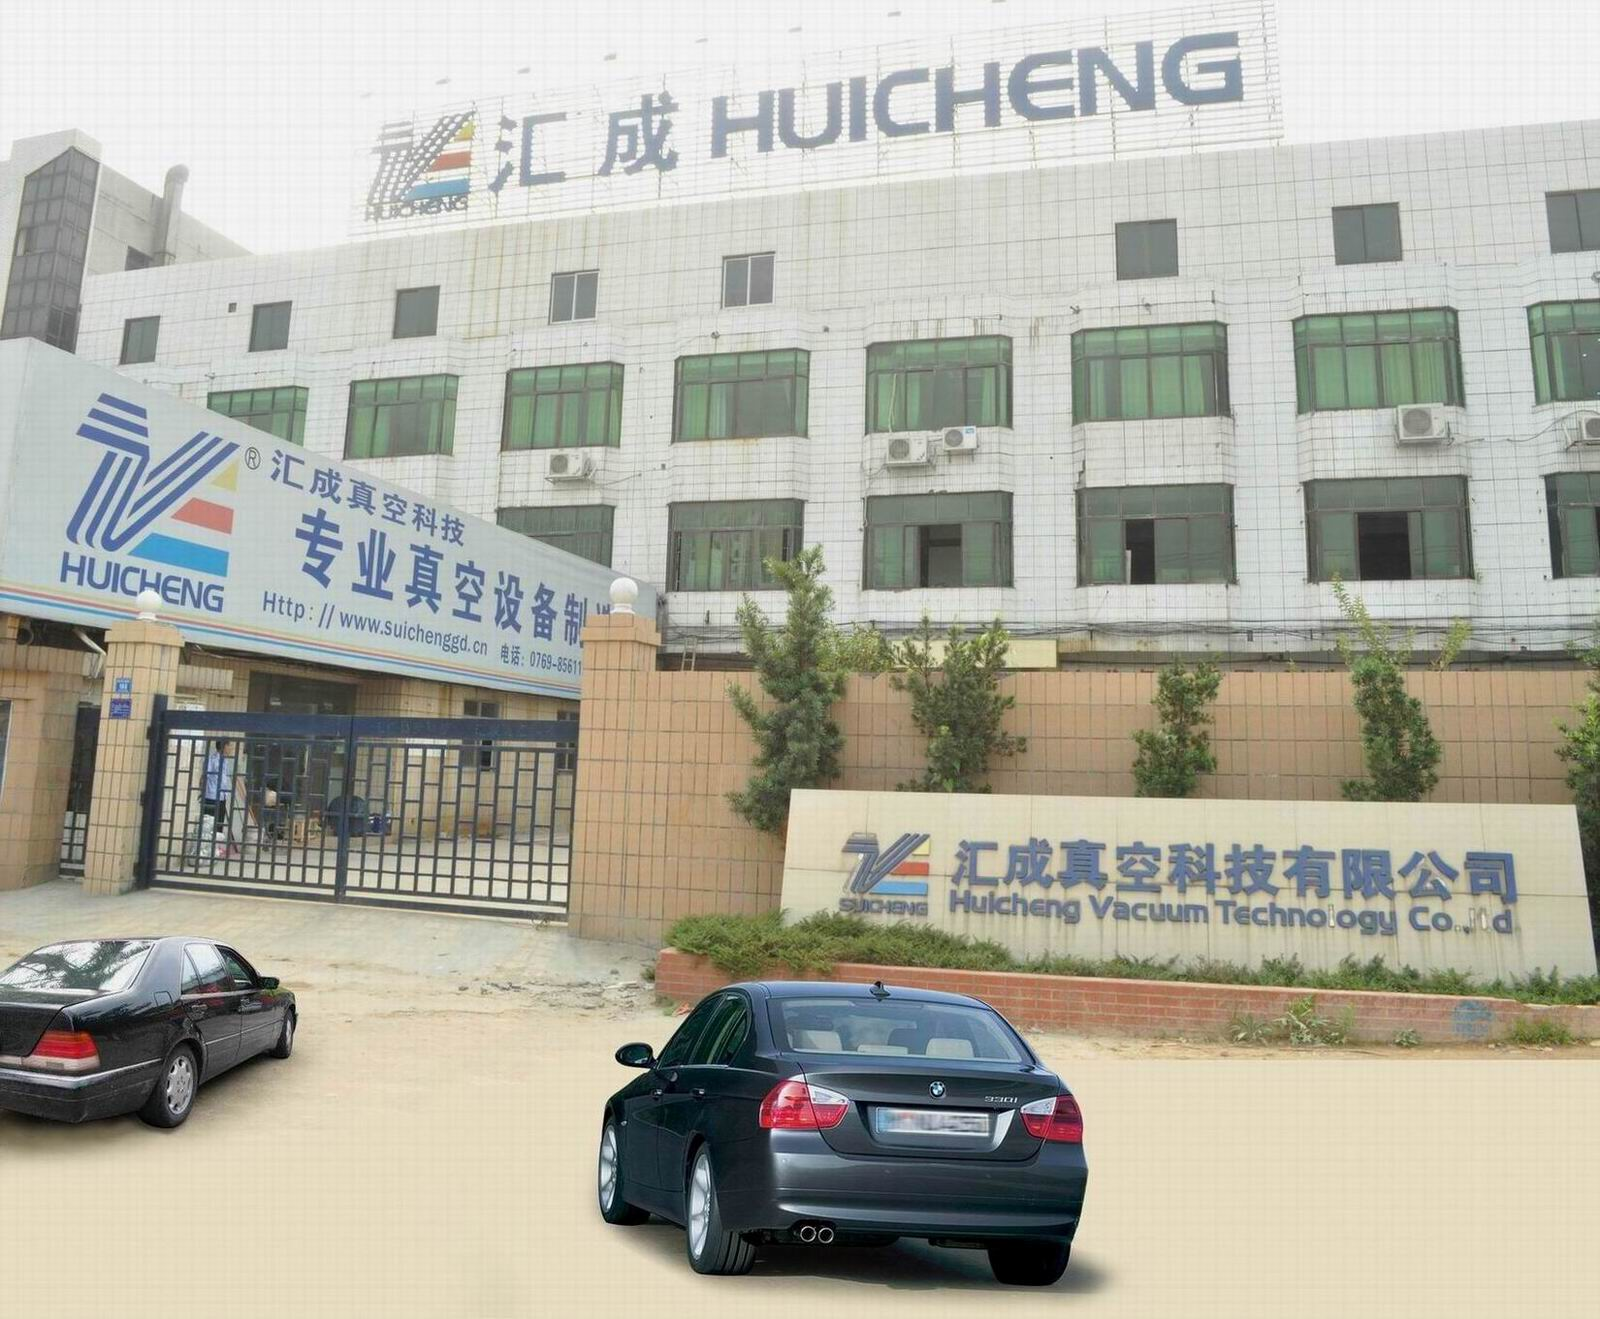 vacuum technology and coating : company dg huicheng from eziziwalase.pev.pl size 1600 x 1319 jpeg 294kB